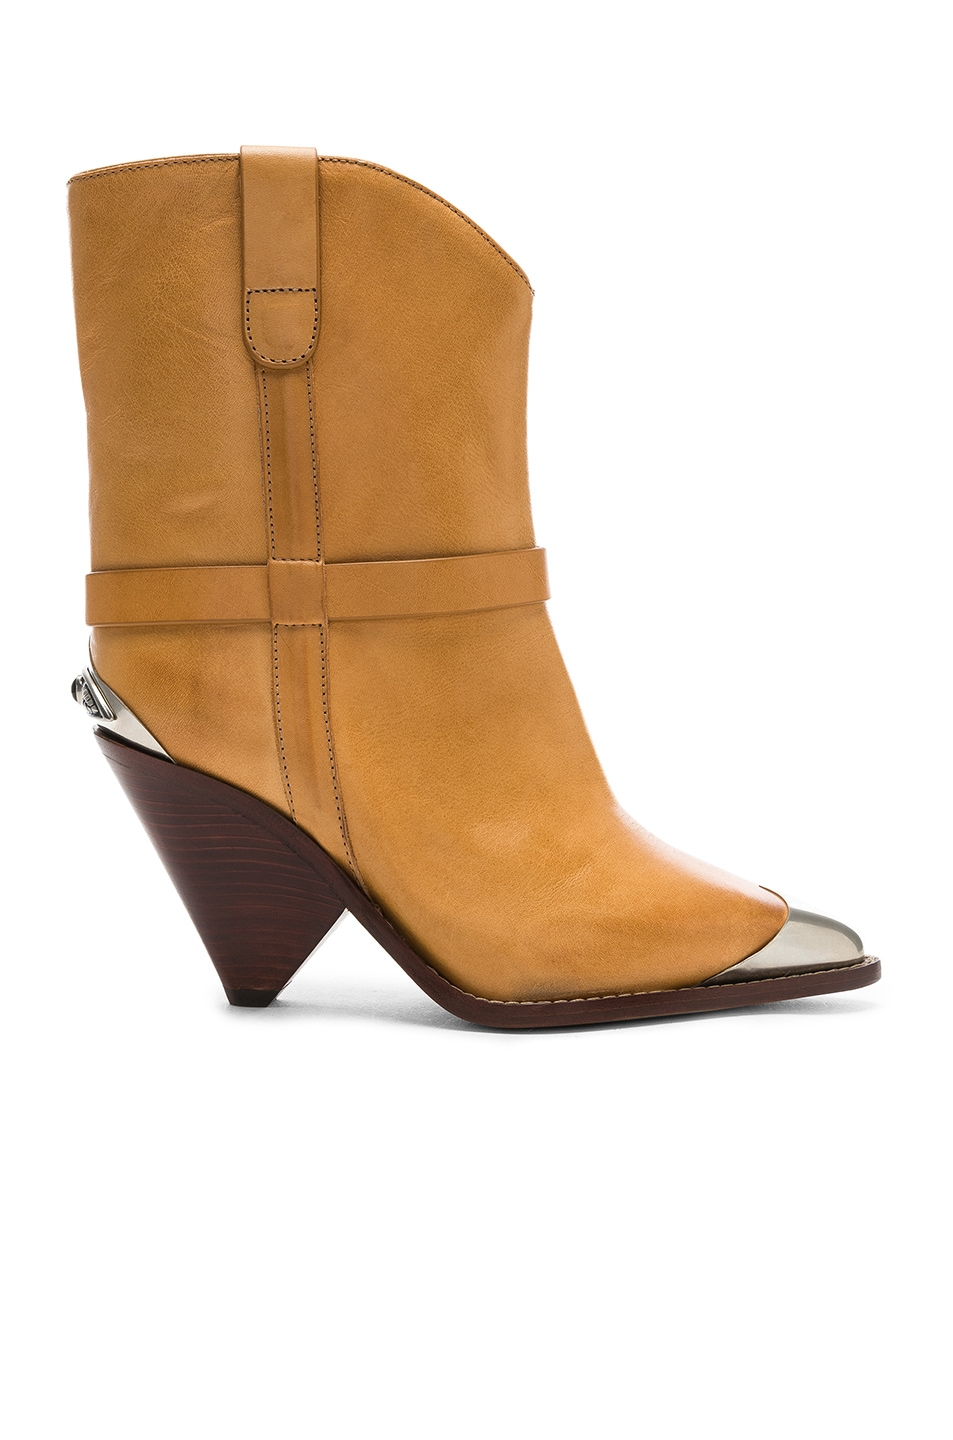 Image 1 of Isabel Marant Leather Lamsy Boots in Natural